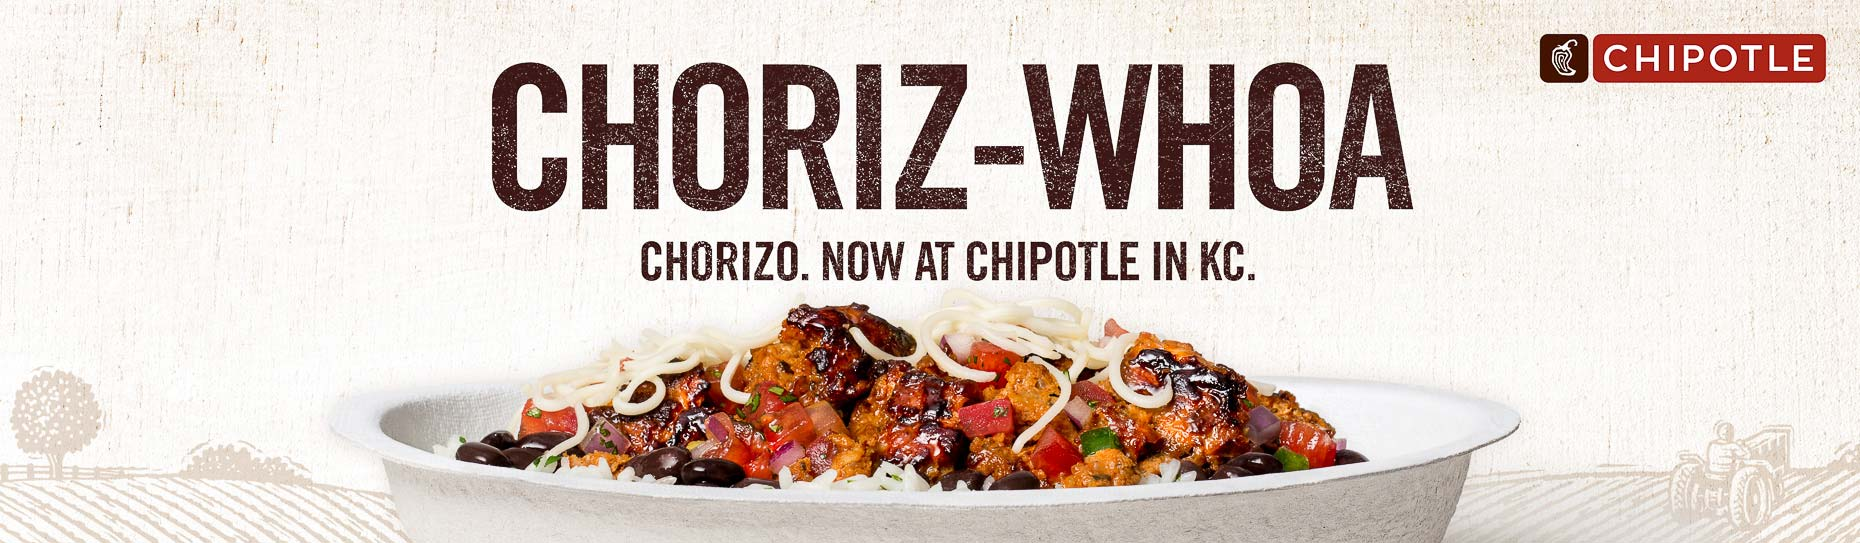 chipotle_20150716_Chorizo_OOH_Billboard_Hires_1_ft